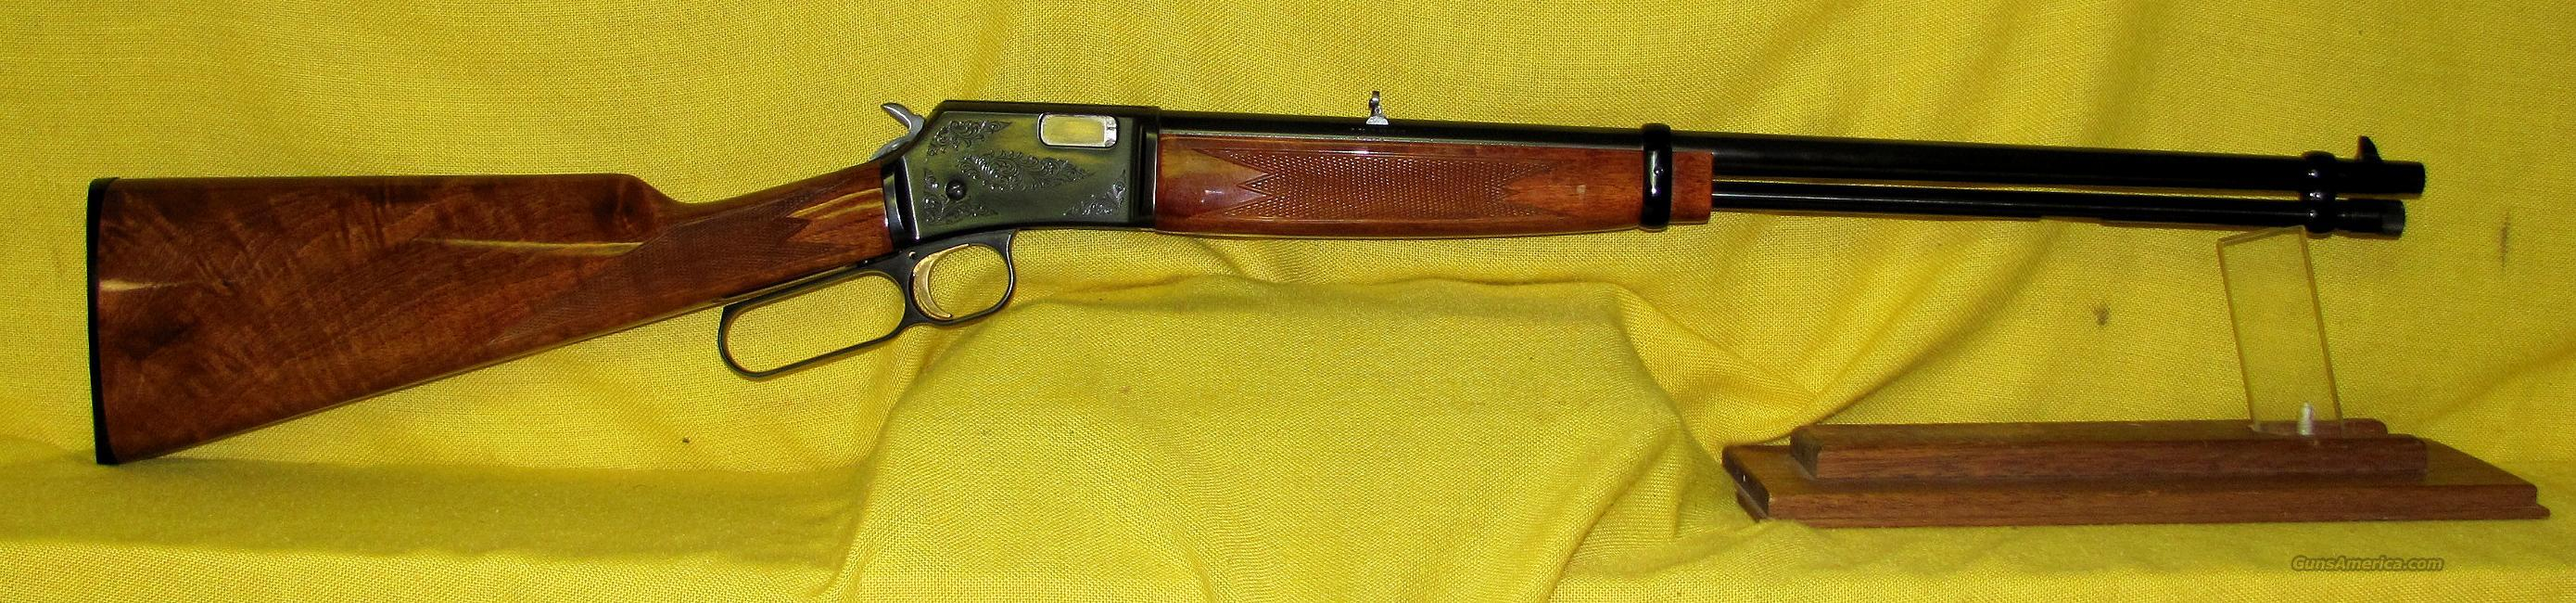 "BROWNING BLR GRADE 2 .22LR 20""BBL  Guns > Rifles > Browning Rifles > Lever Action"